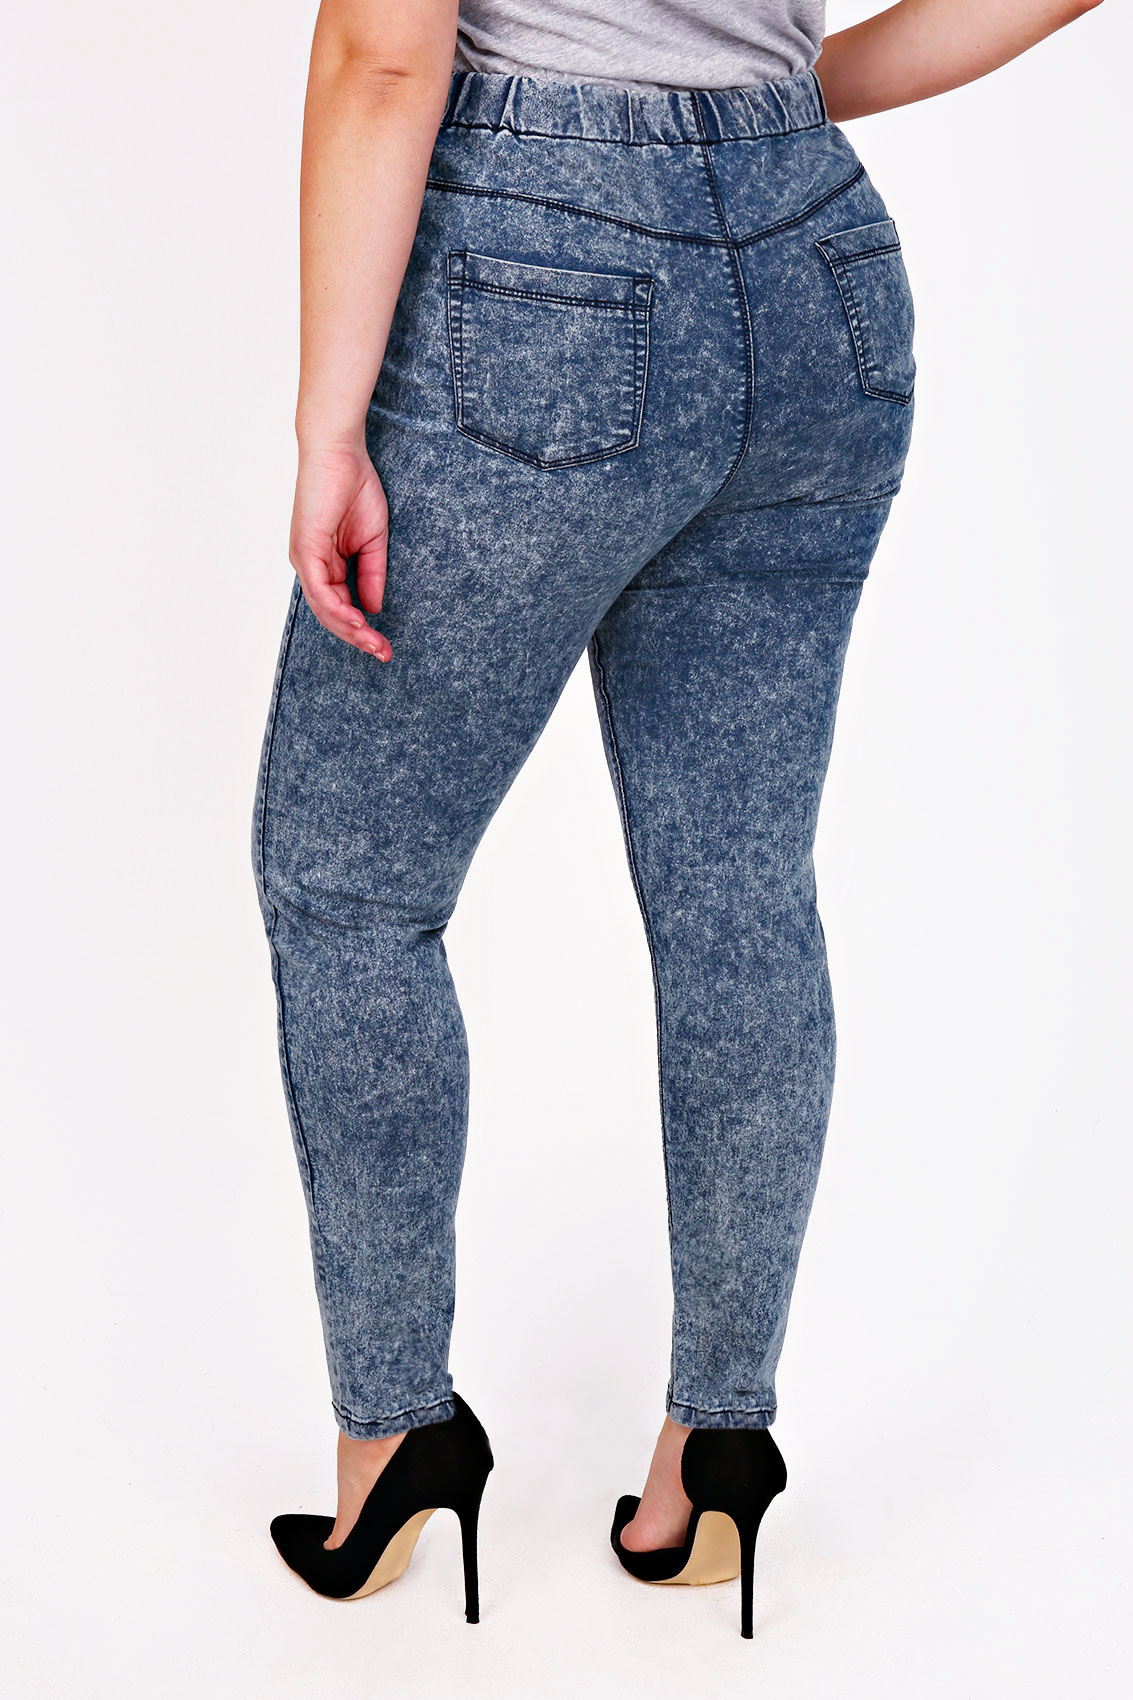 Stretch denim jeggings available in sizes 12, 14, 16, 18, 20, 22, 24, 26, 28, 30, 32 Fit and Fashion Notes: The wide elastic waistband gives you an effortless fit while the denim .